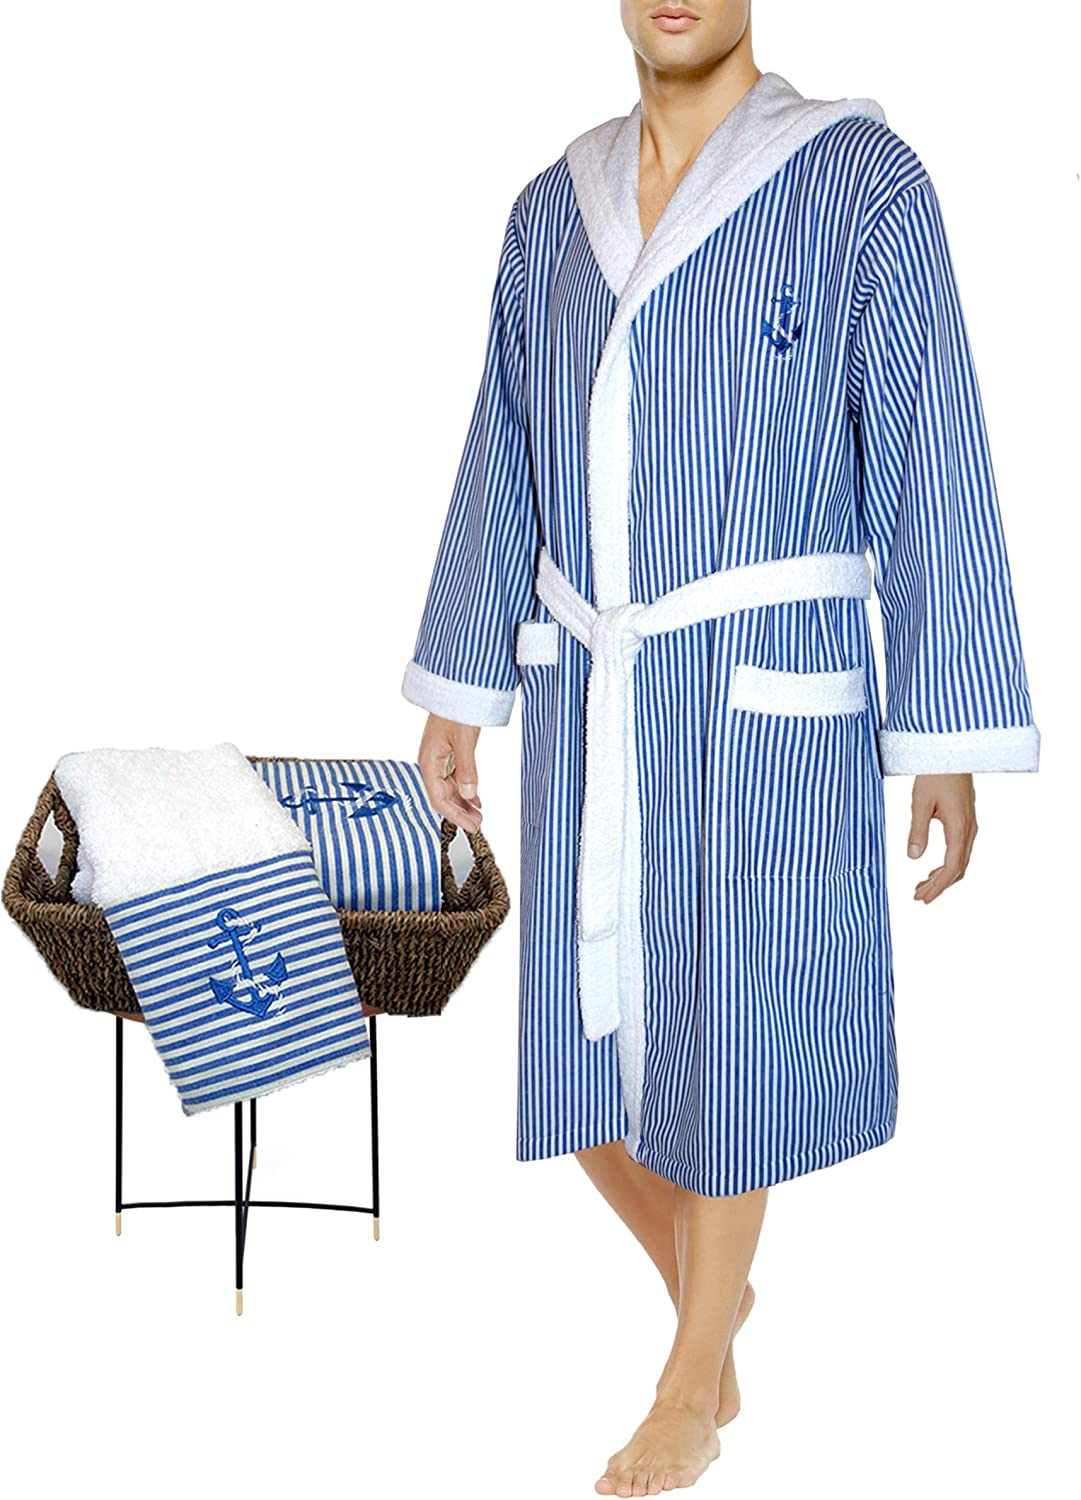 Bathrobe Hooded Size Large + Hand Towel - Riviera Yacht Collection Crafted in Europe